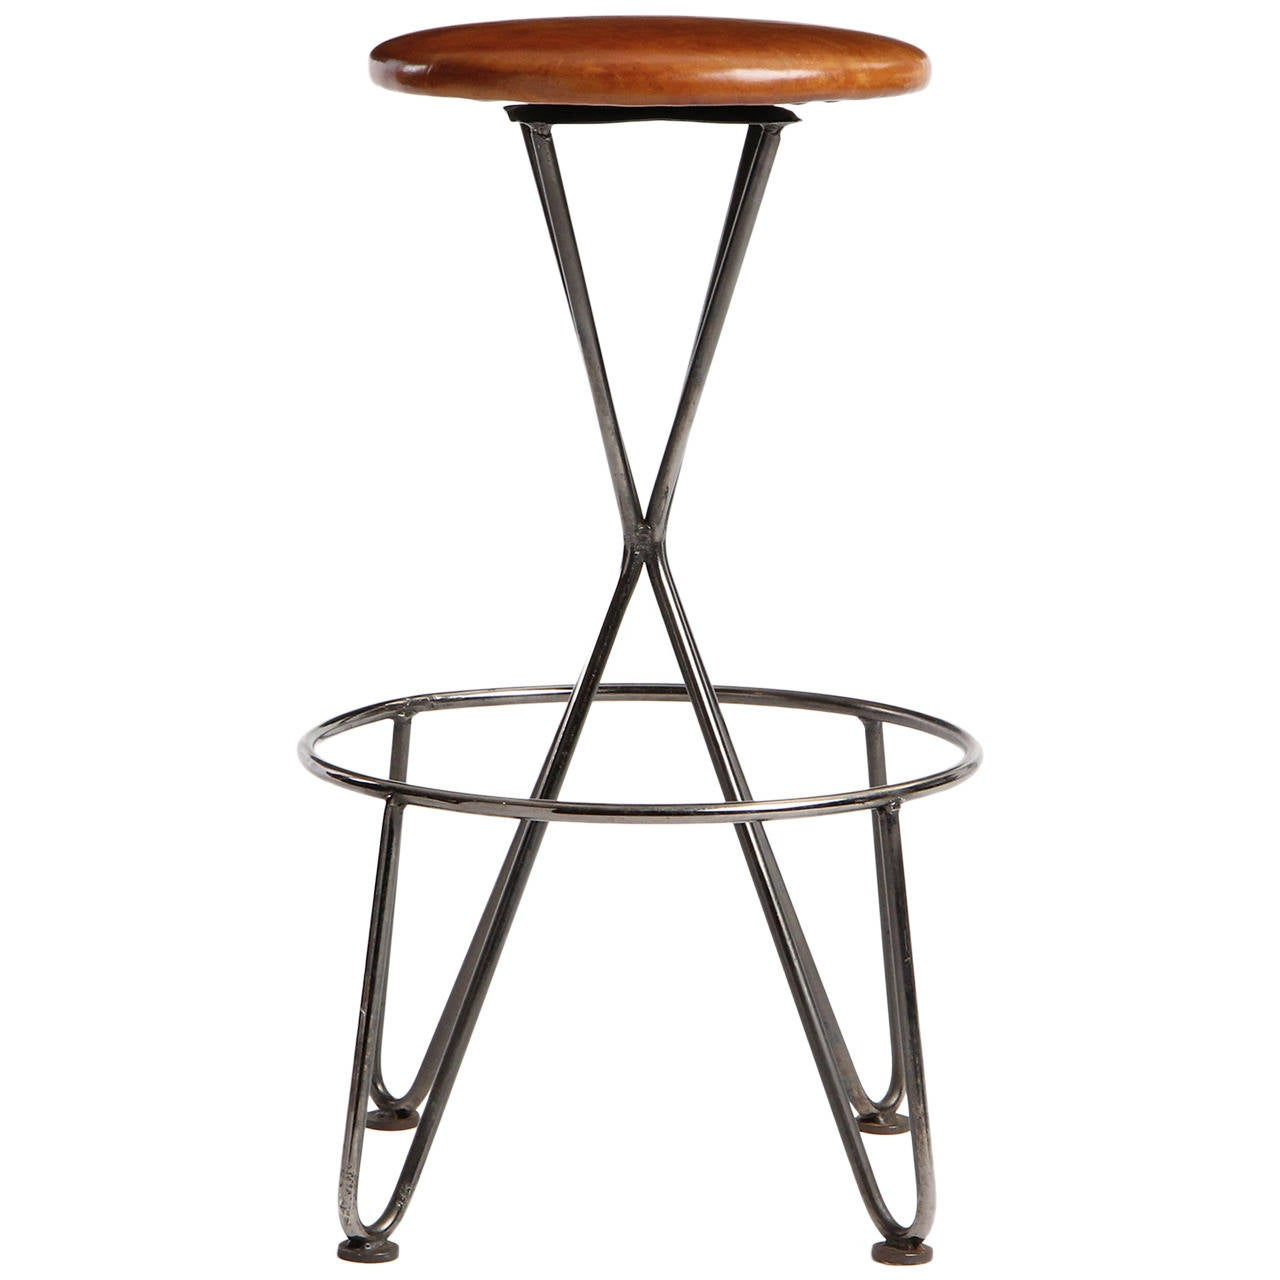 Swiveling Steel and Leather Stool